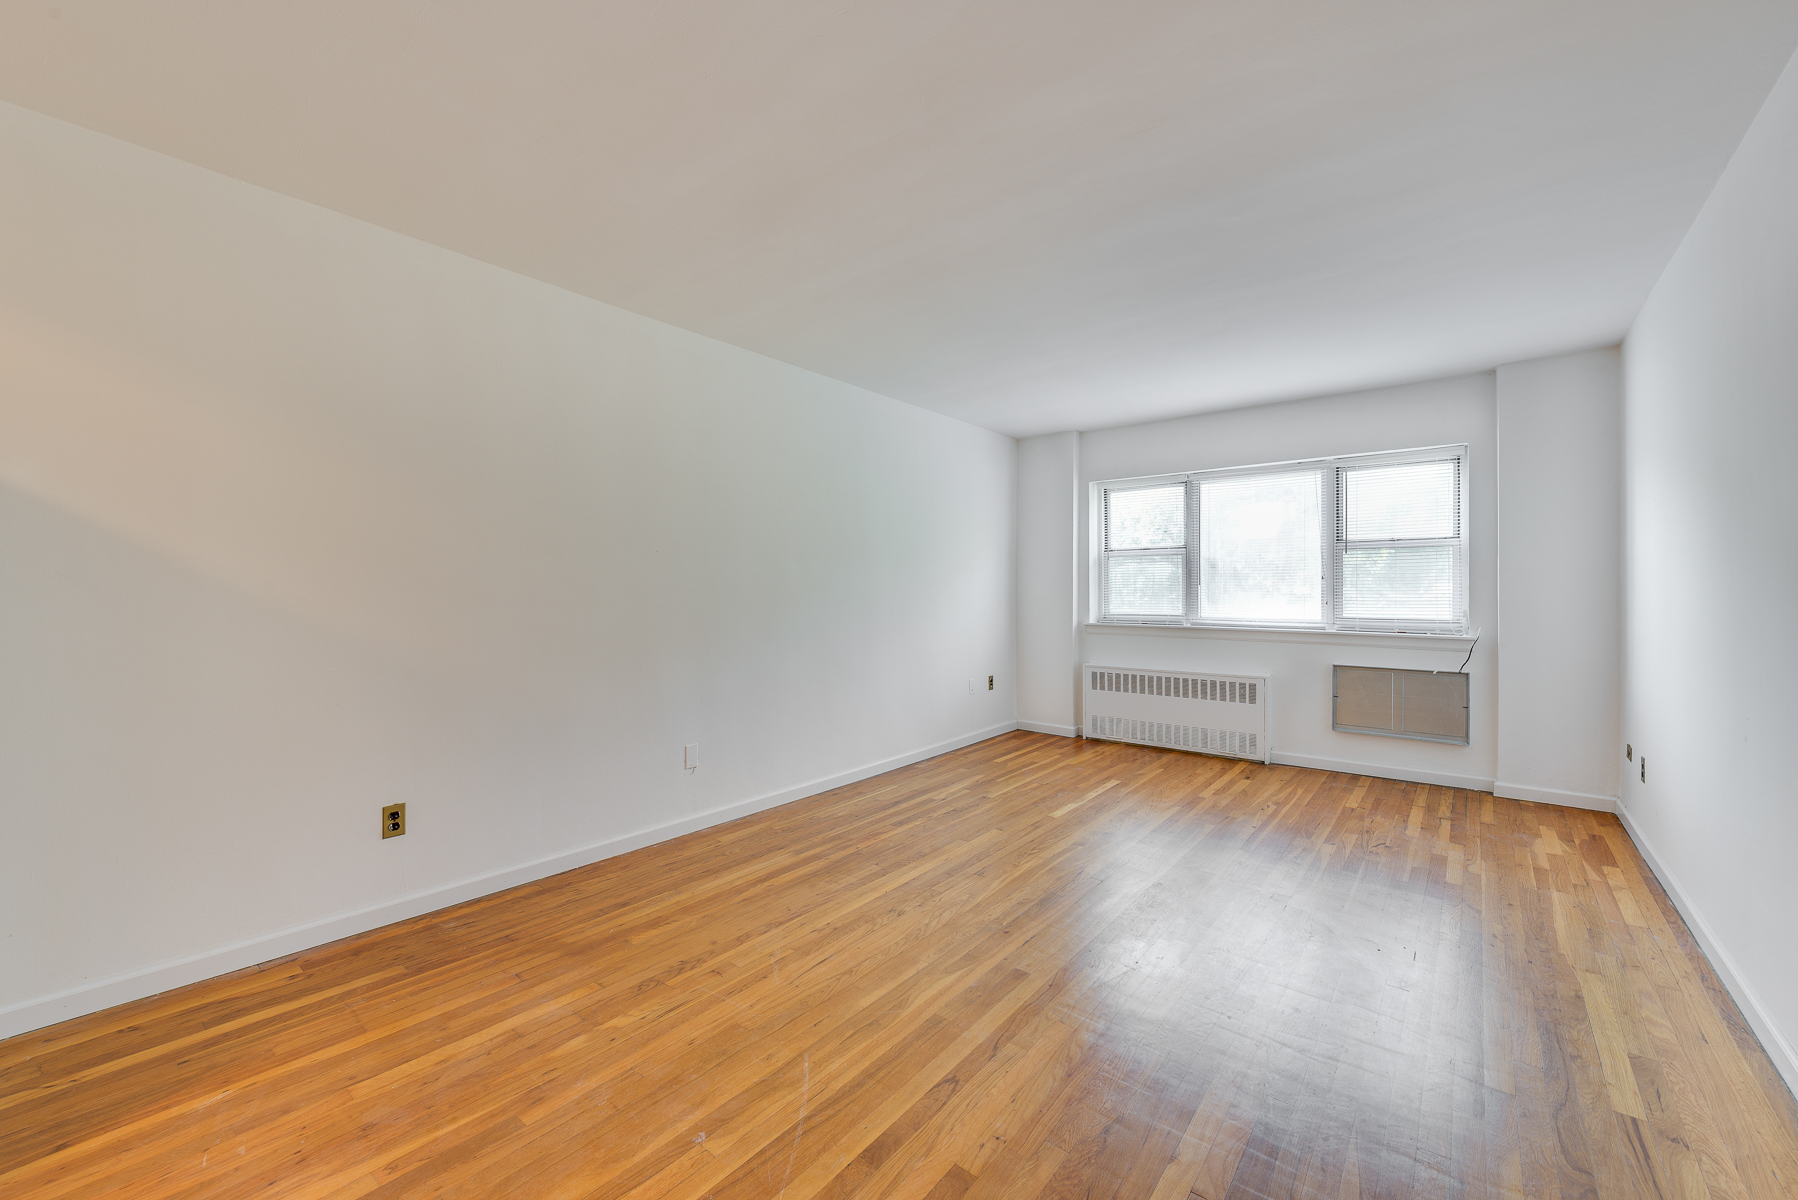 Property For Sale at Large, Renovated and Bright 1 BR